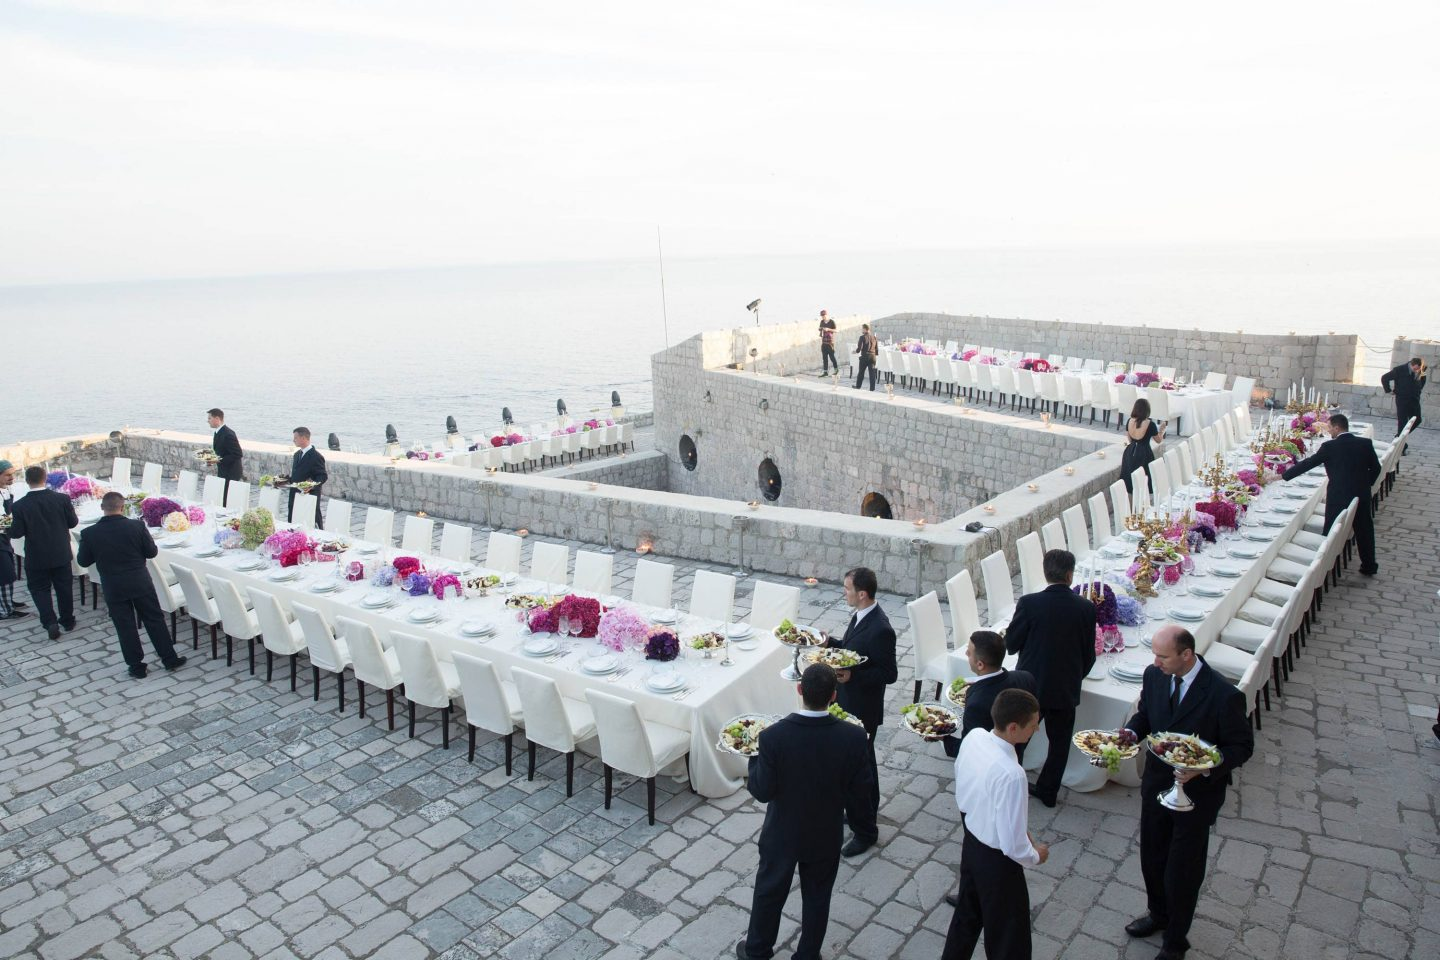 Evening dinner at Fort Lovrijenac at this Dubrovnik wedding in Croatia | Photo by Robert Fairer